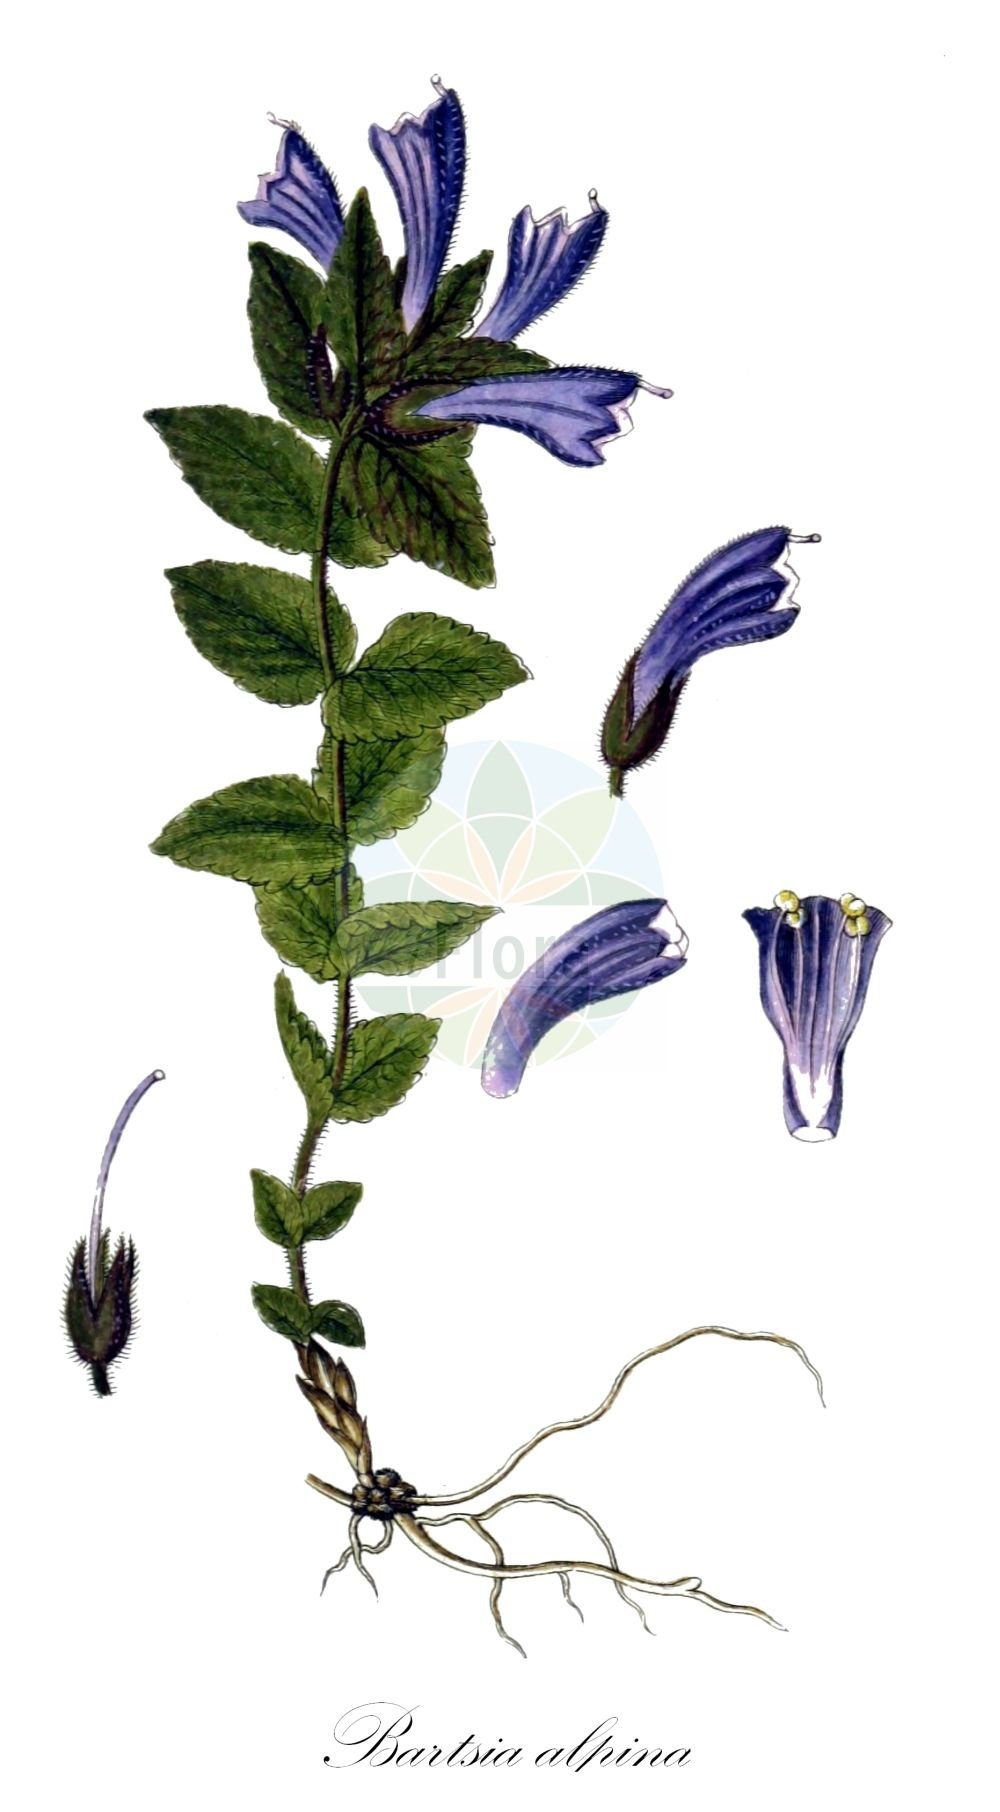 Historische Abbildung von Bartsia alpina (Alpenhelm - Alpine Bartsia). Das Bild zeigt Blatt, Bluete, Frucht und Same. ---- Historical Drawing of Bartsia alpina (Alpenhelm - Alpine Bartsia).The image is showing leaf, flower, fruit and seed.(Bartsia alpina,Alpenhelm,Alpine Bartsia,Alpen-Bartschie,Europaeischer Trauerblume,Velvetbells,Bartsia,Bartschie,Velvetbells,Orobanchaceae,Sommerwurzgewaechse,Broomrape family,Blatt,Bluete,Frucht,Same,leaf,flower,fruit,seed,Sturm (1796f))